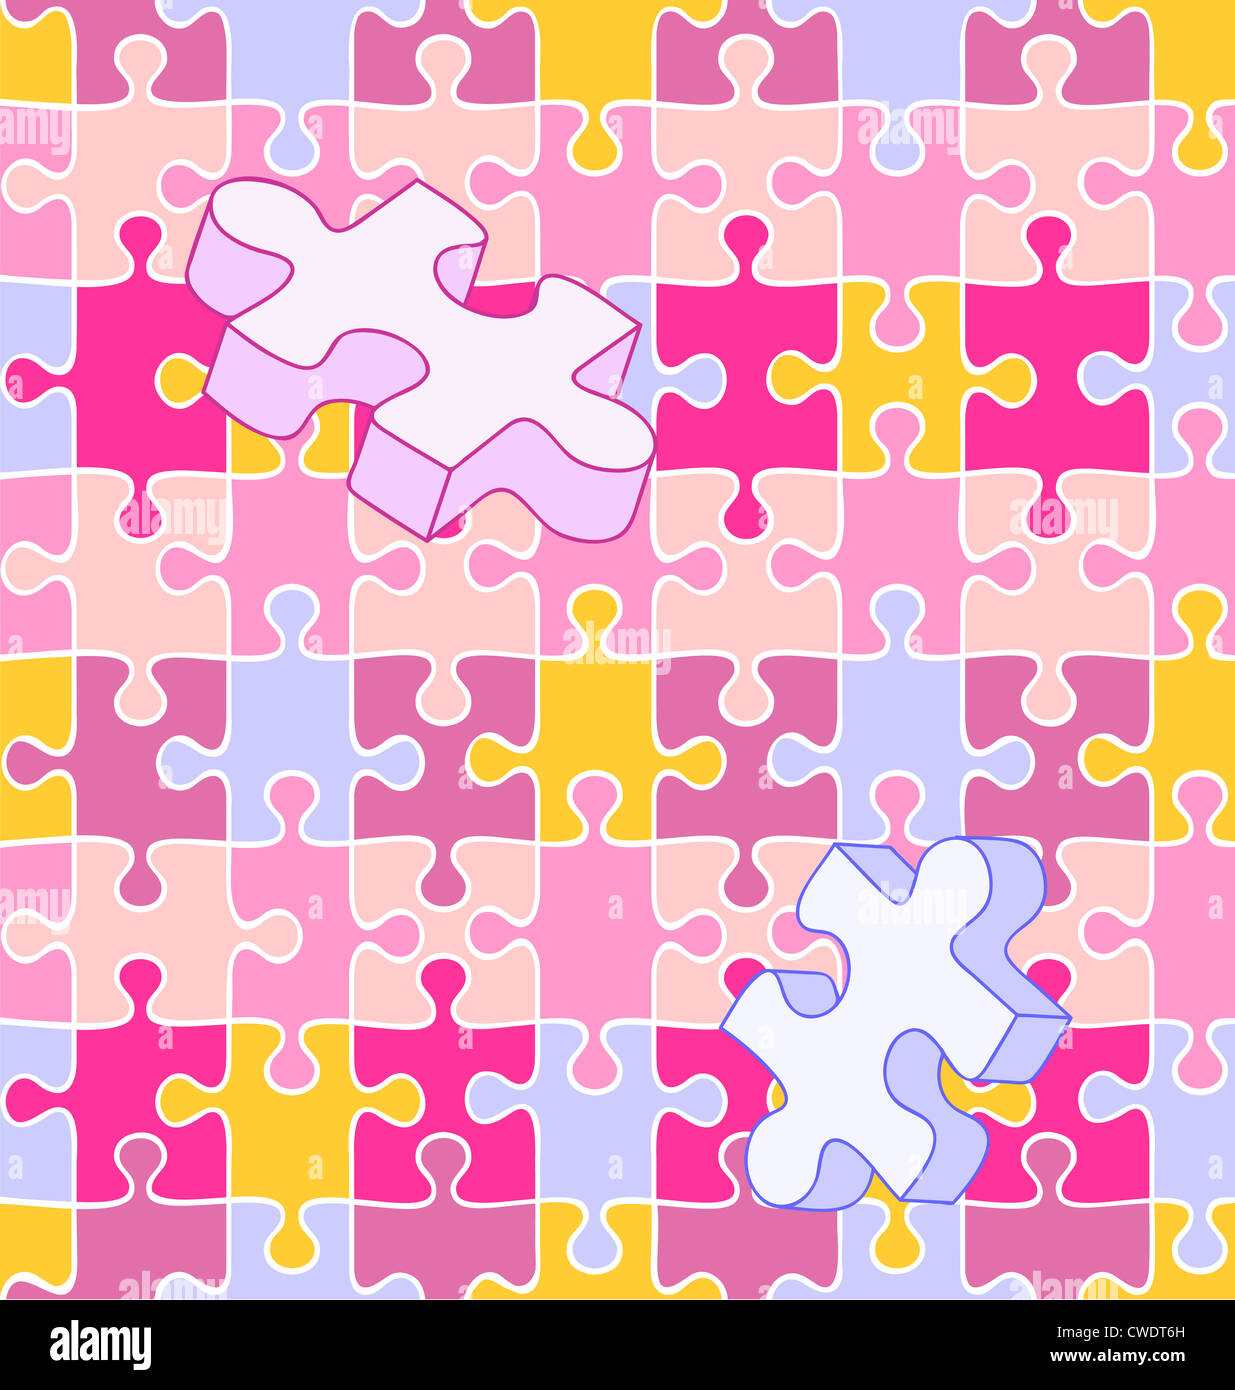 Seamless Vector Swatch Of Colorful Wall To Puzzle Pieces Align Perfectly For Wallpaper Or Background